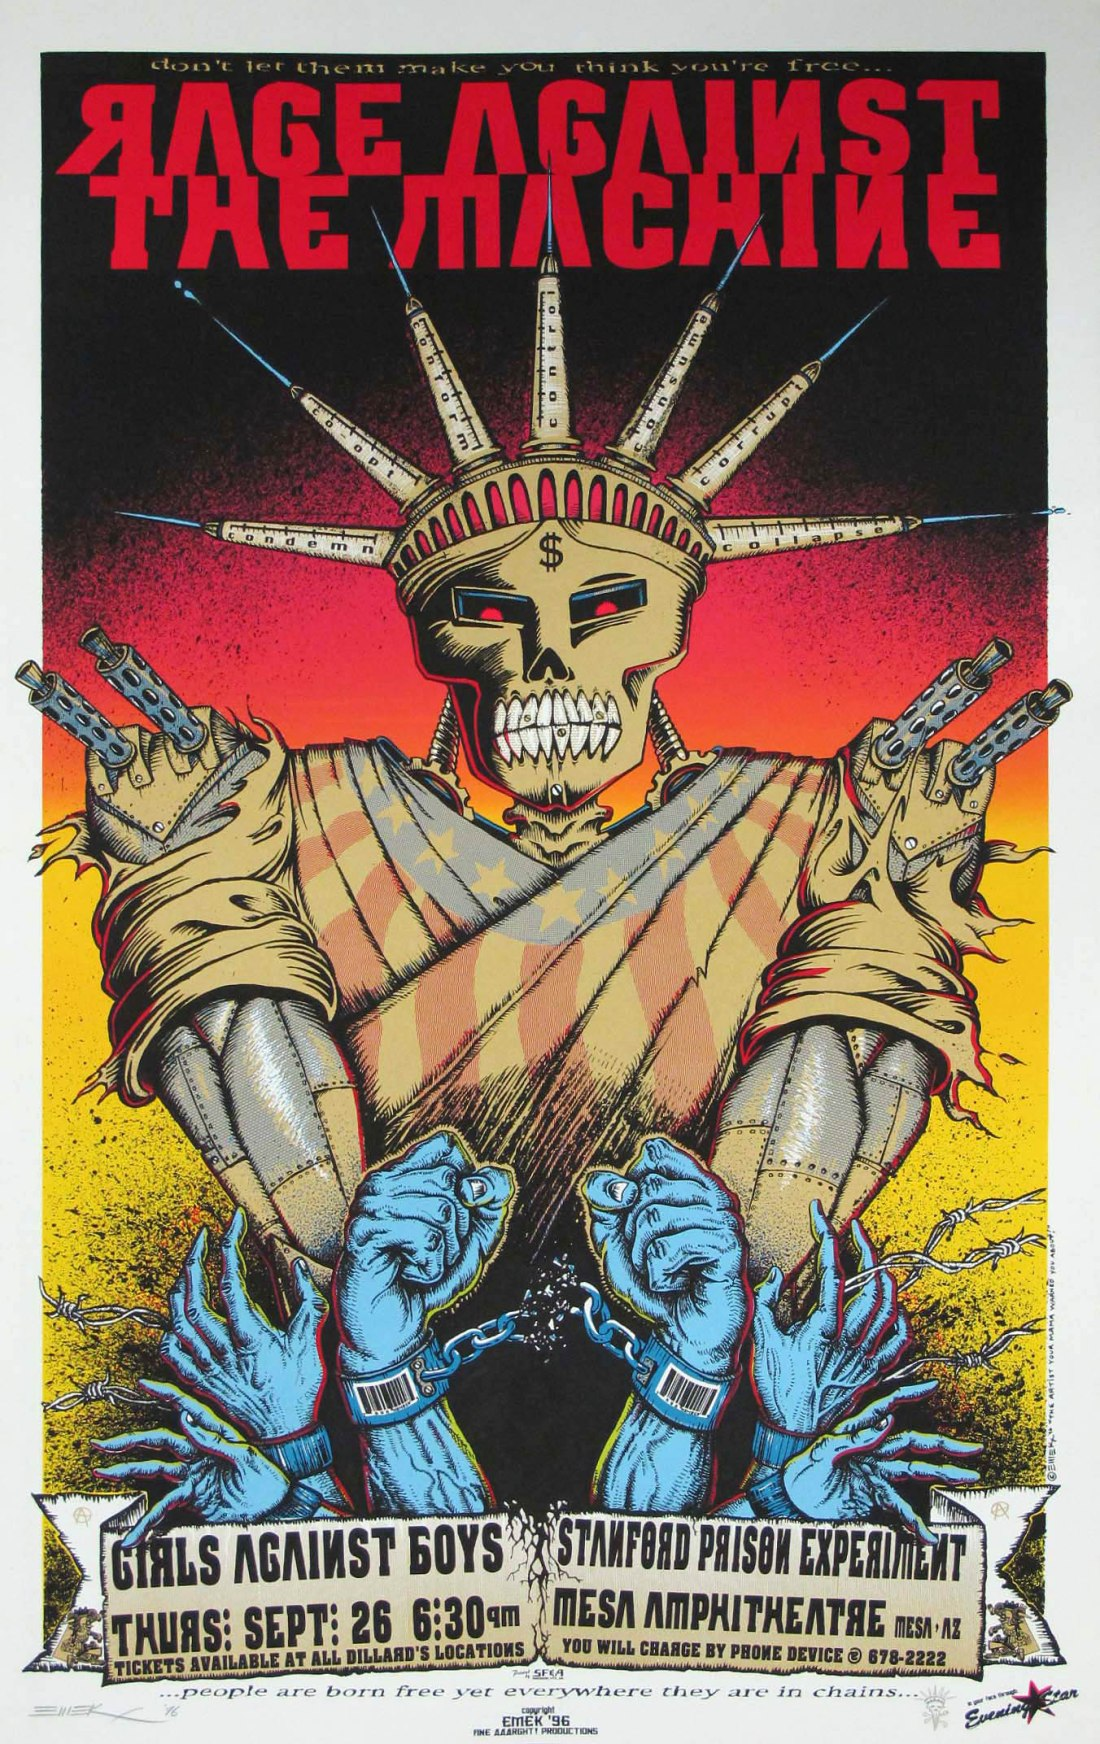 productimage-picture-rage-against-the-machine-original-rock-concert-poster-1-9600